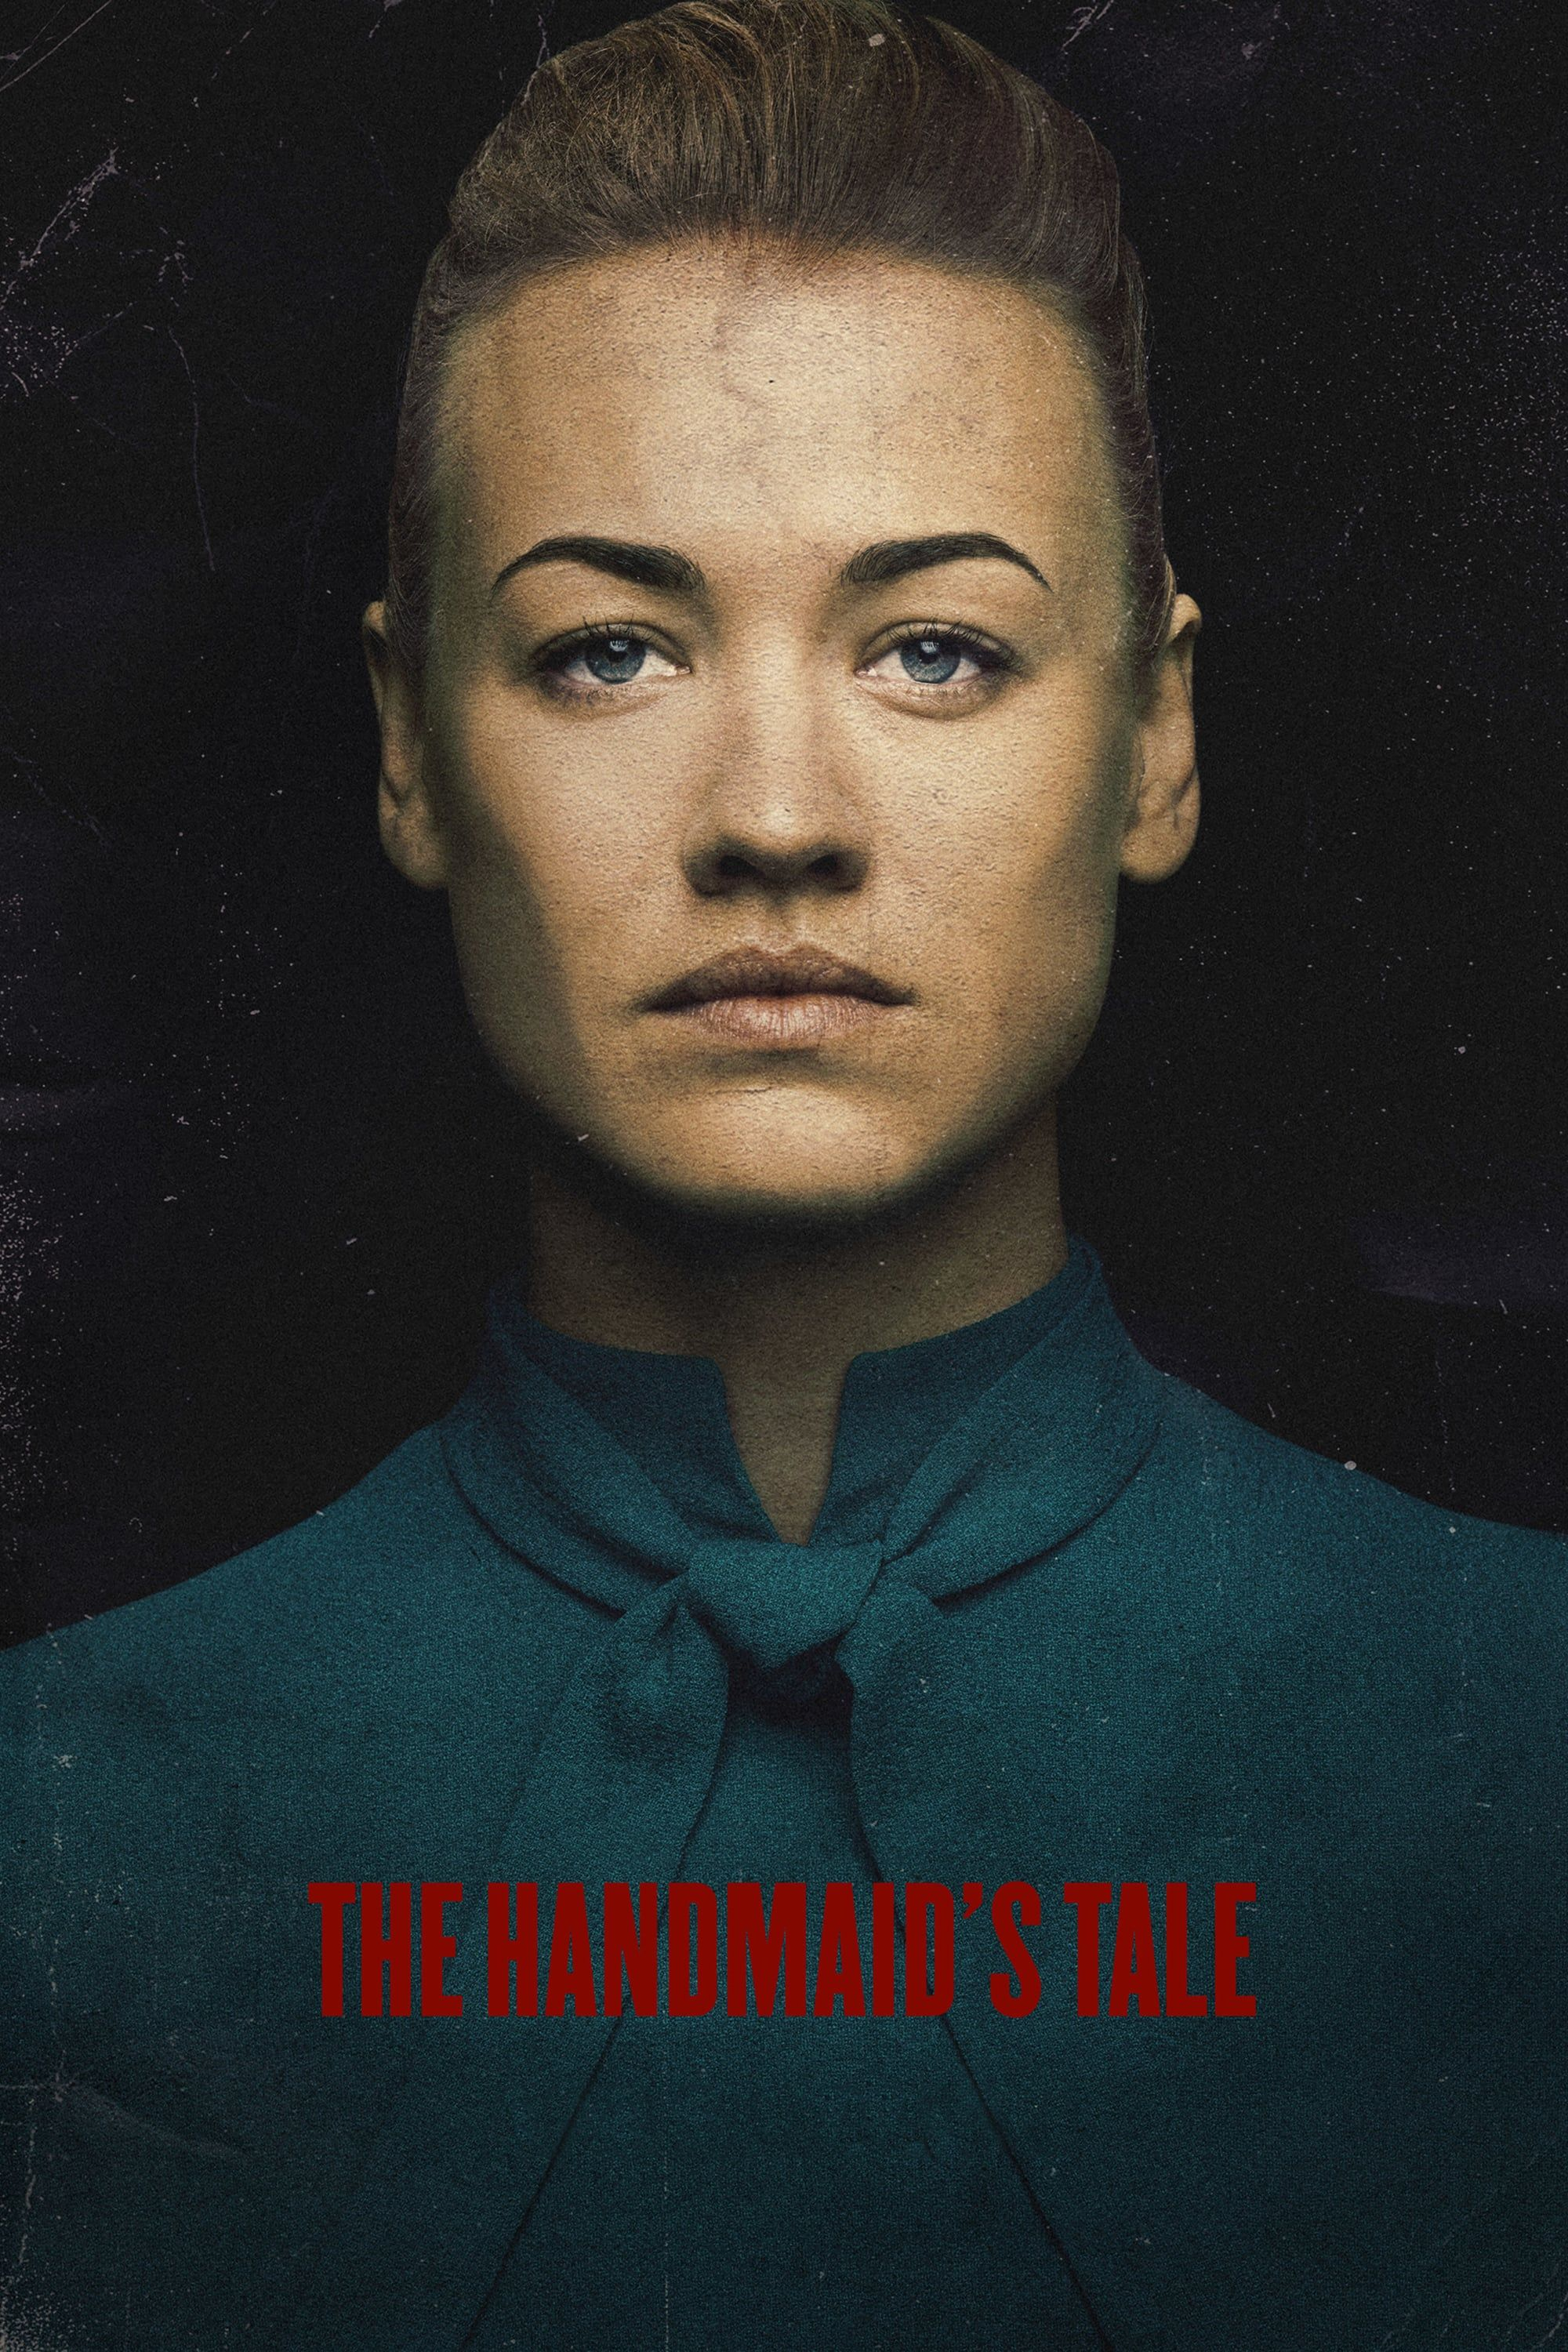 The Handmaid's Tale (TV Series) Full Episodes (HD Quality